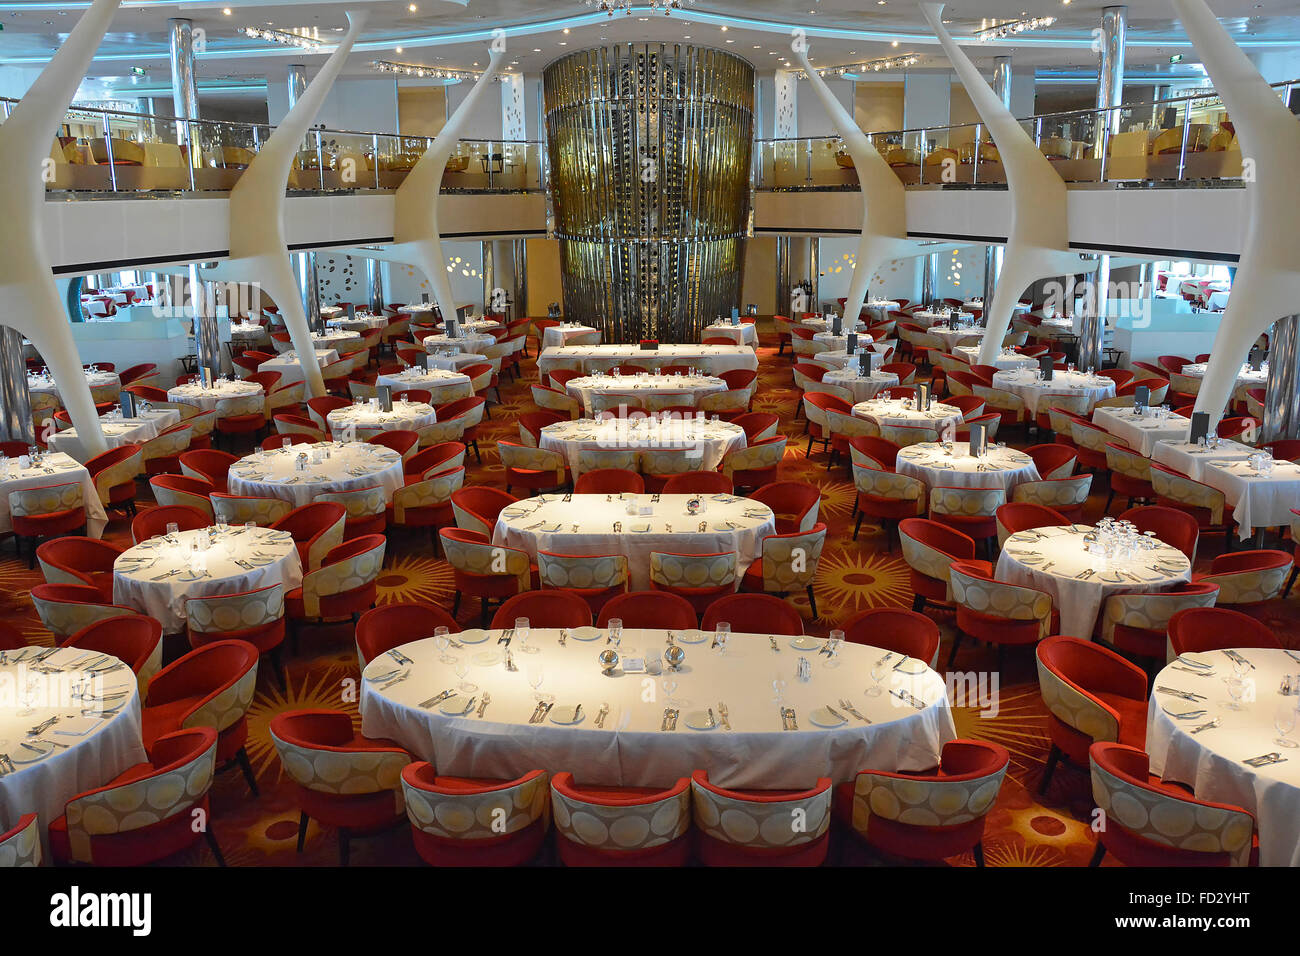 Cruise ship restaurant tables prepared for evening dining - Stock Image